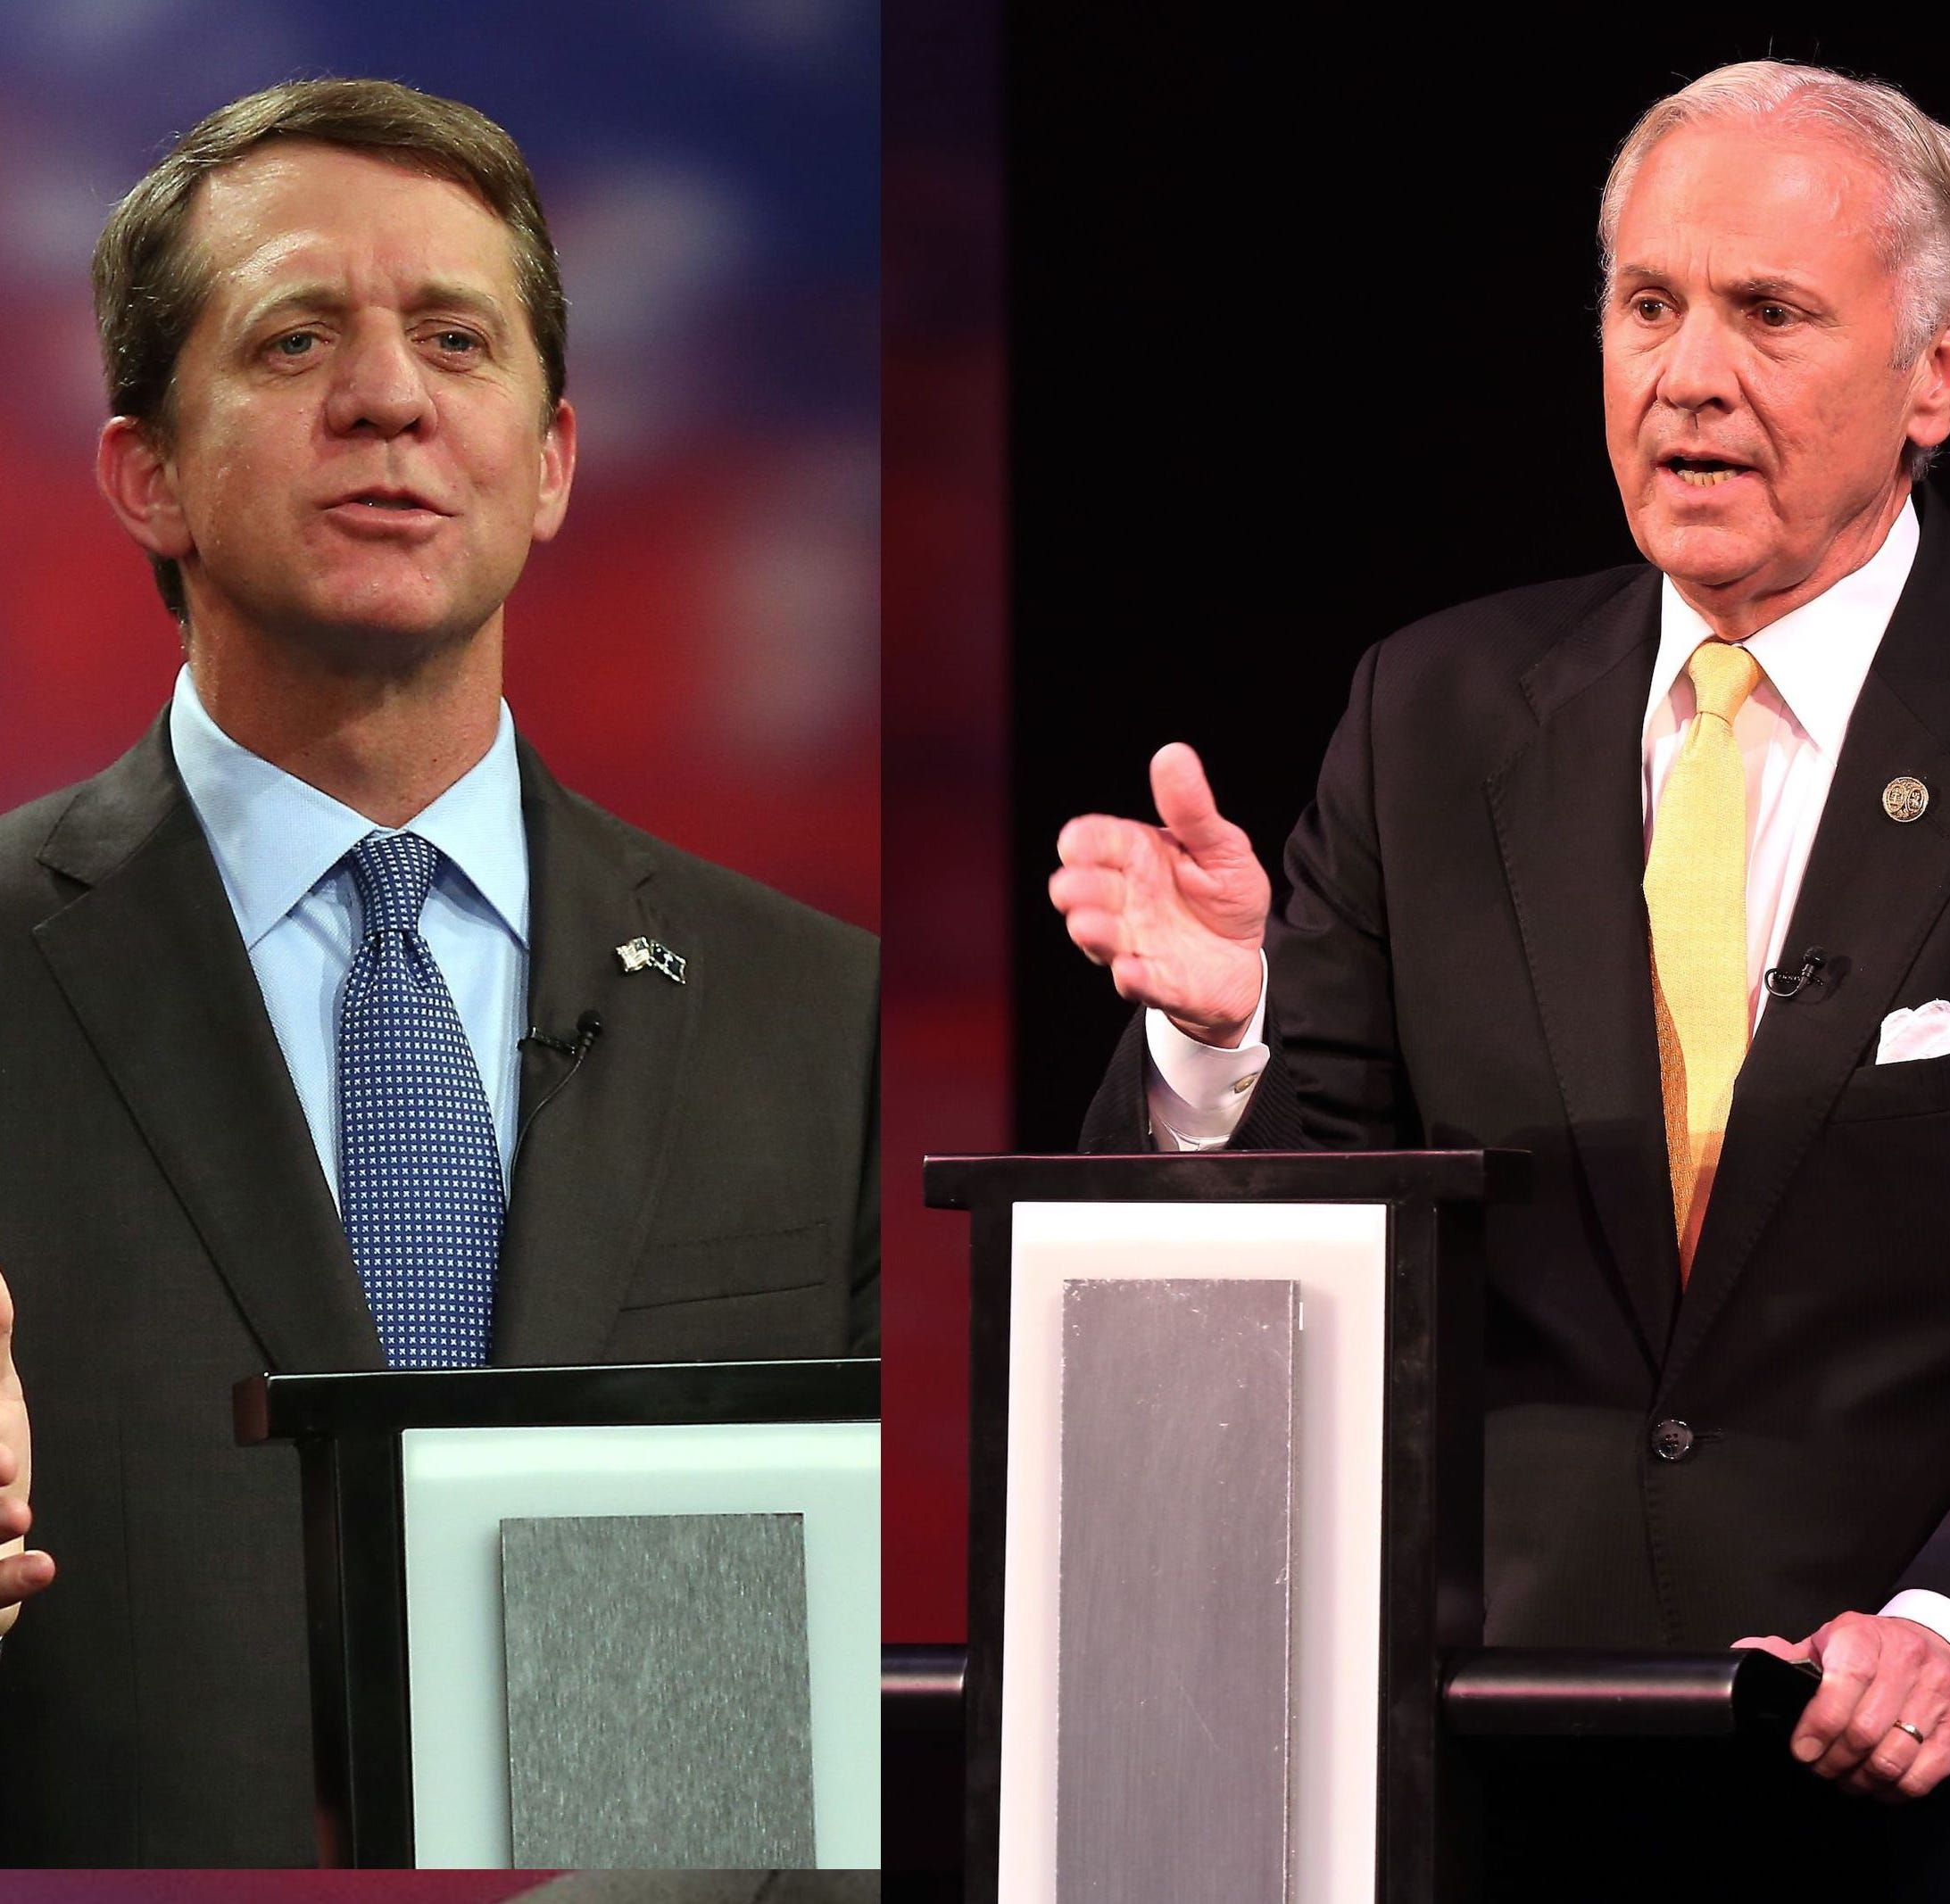 Gov. McMaster, Democrat Smith differ on education proposals. But do SC voters care?